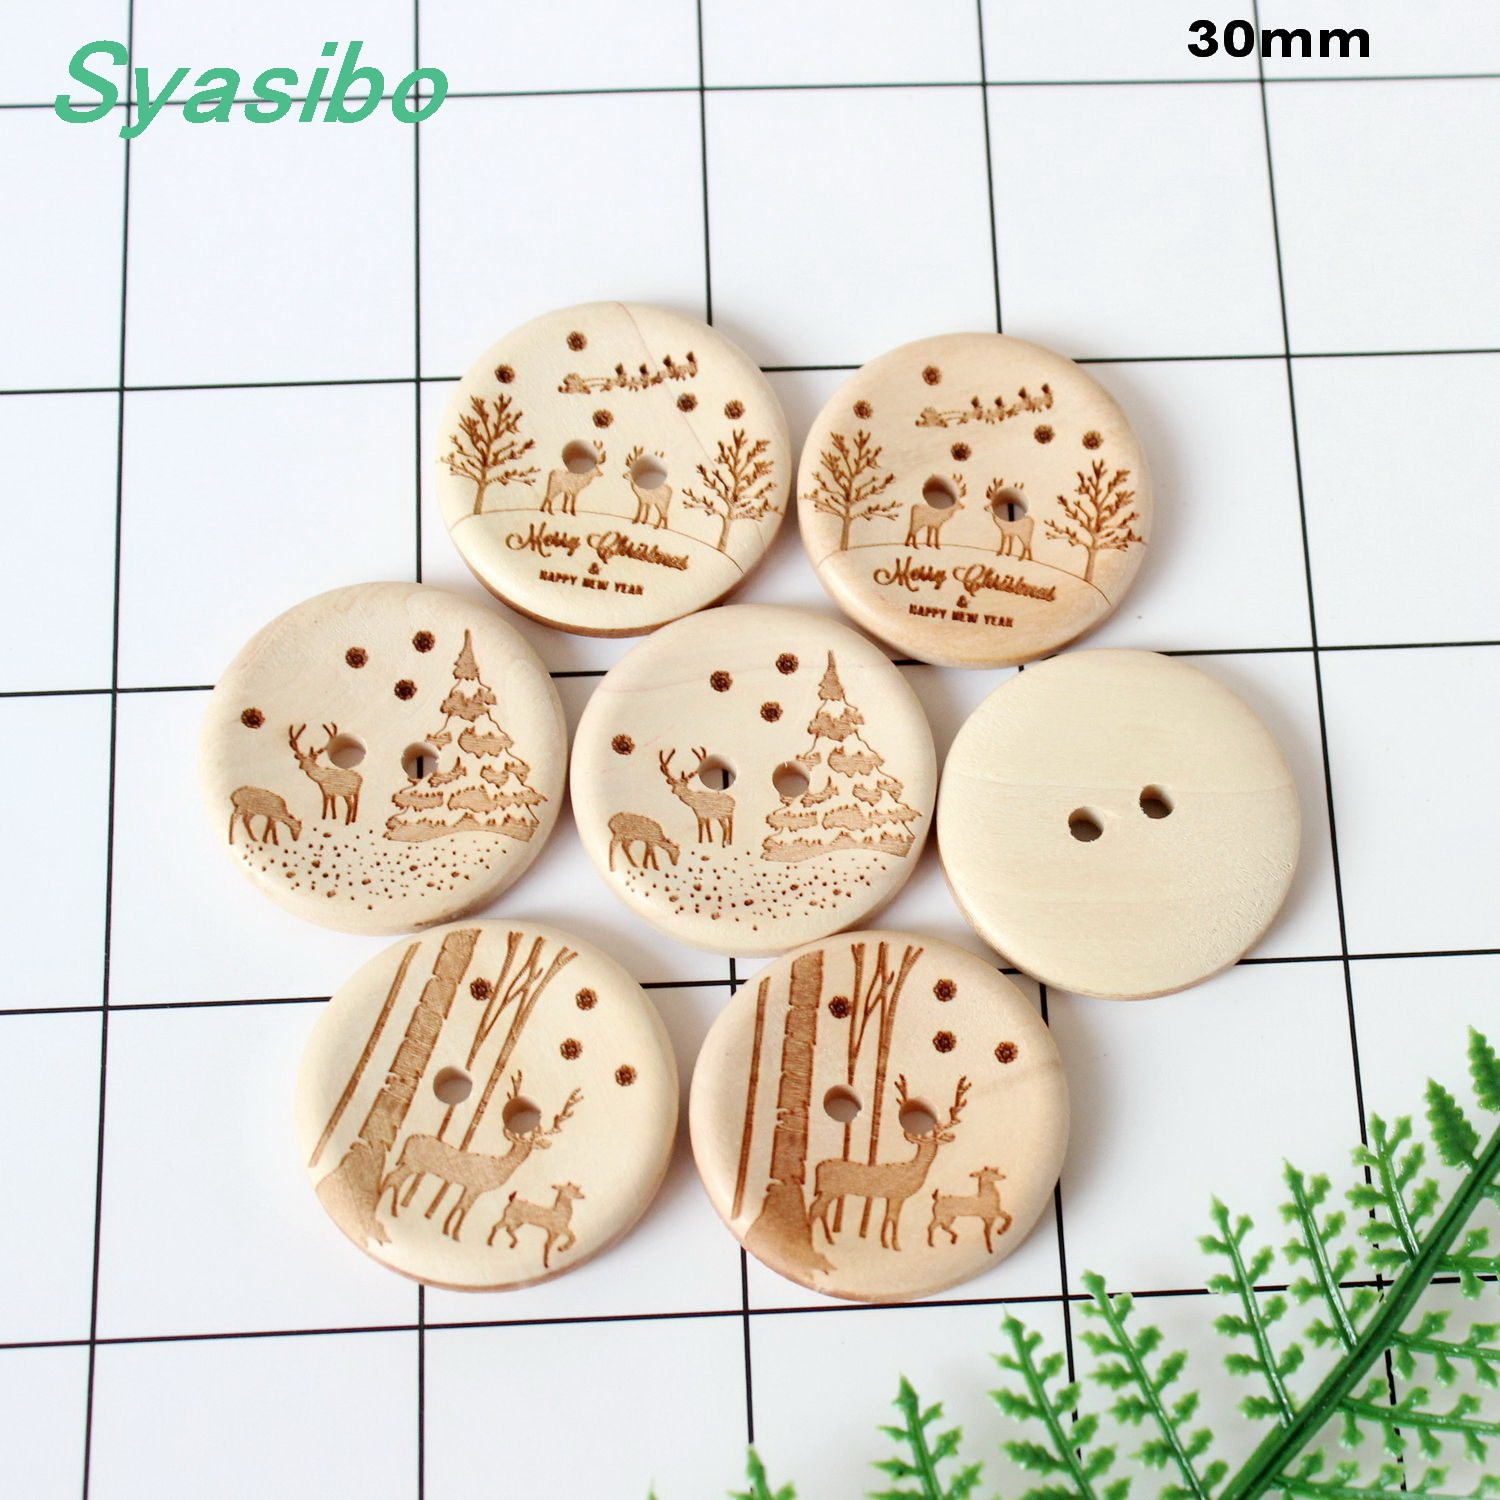 "(15pcs Each) 30mm Unfinished Natural Wooden Buttons Santa Deer Sled Snowflakes Pine Tree Christmas Buttons 1.2""-ad0170"